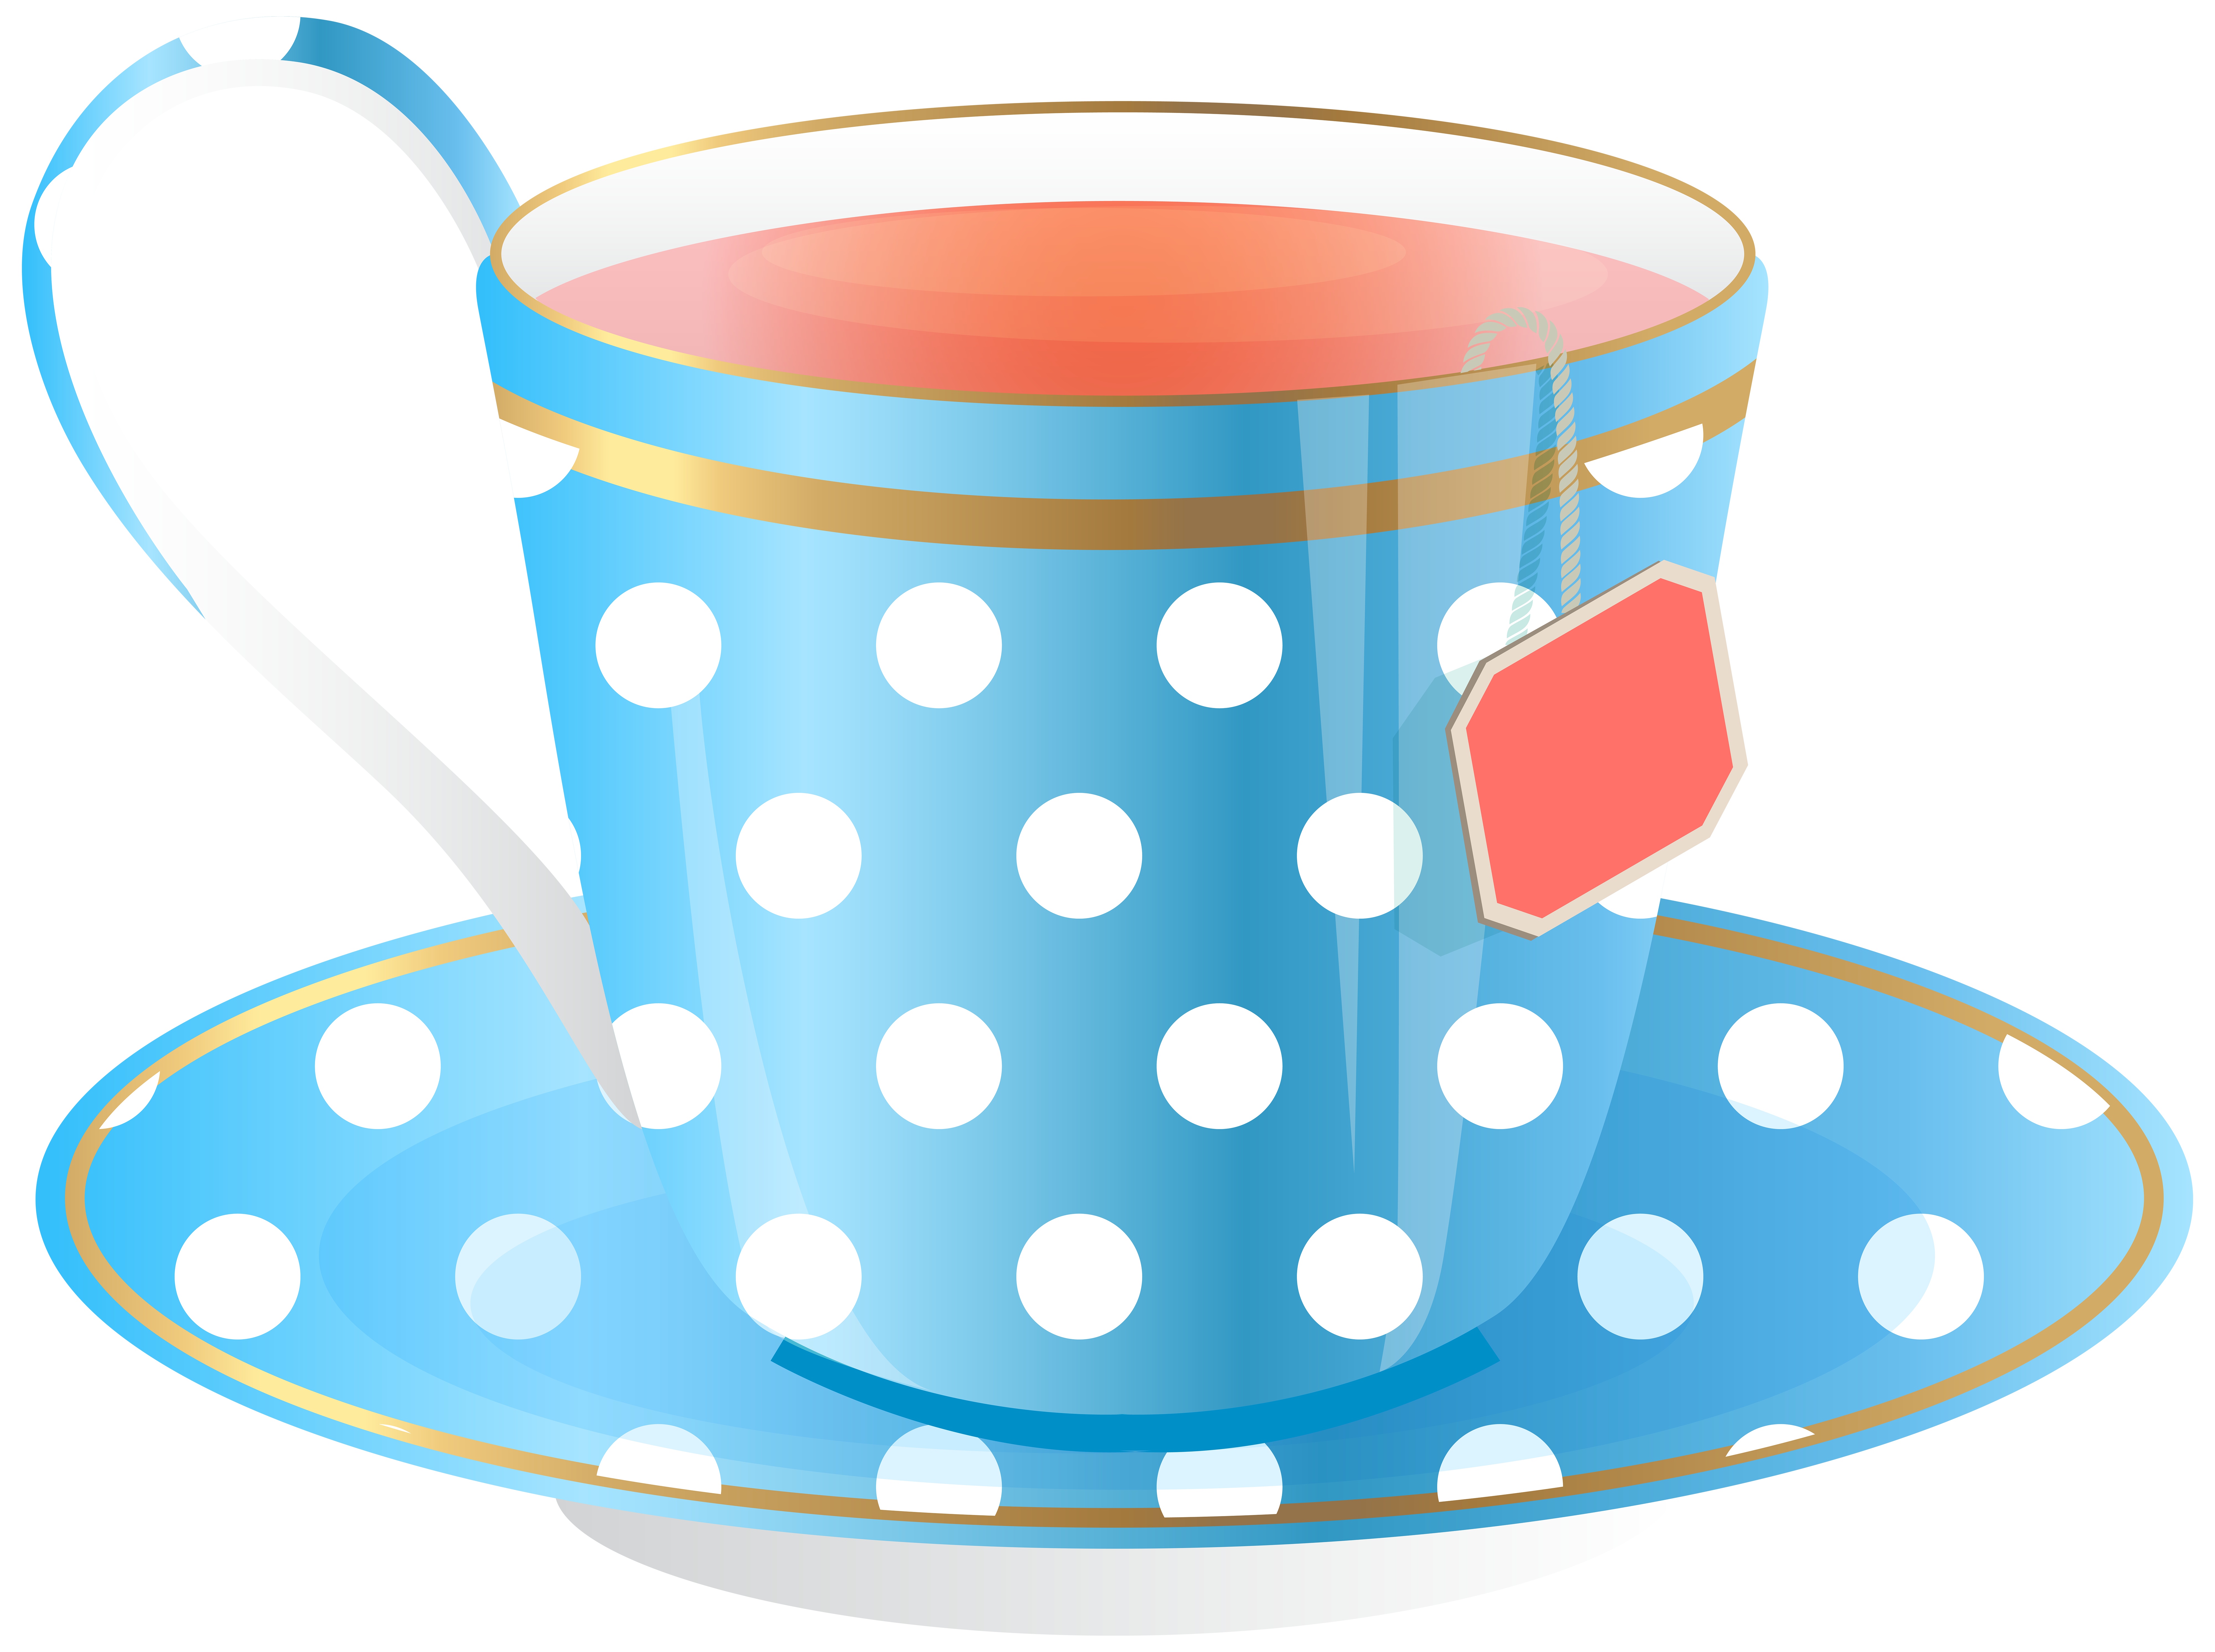 Tea cup clipart transparent background banner stock Teacup Clip art - Blue Tea Cup PNG Transparent Clip Art Image png ... banner stock